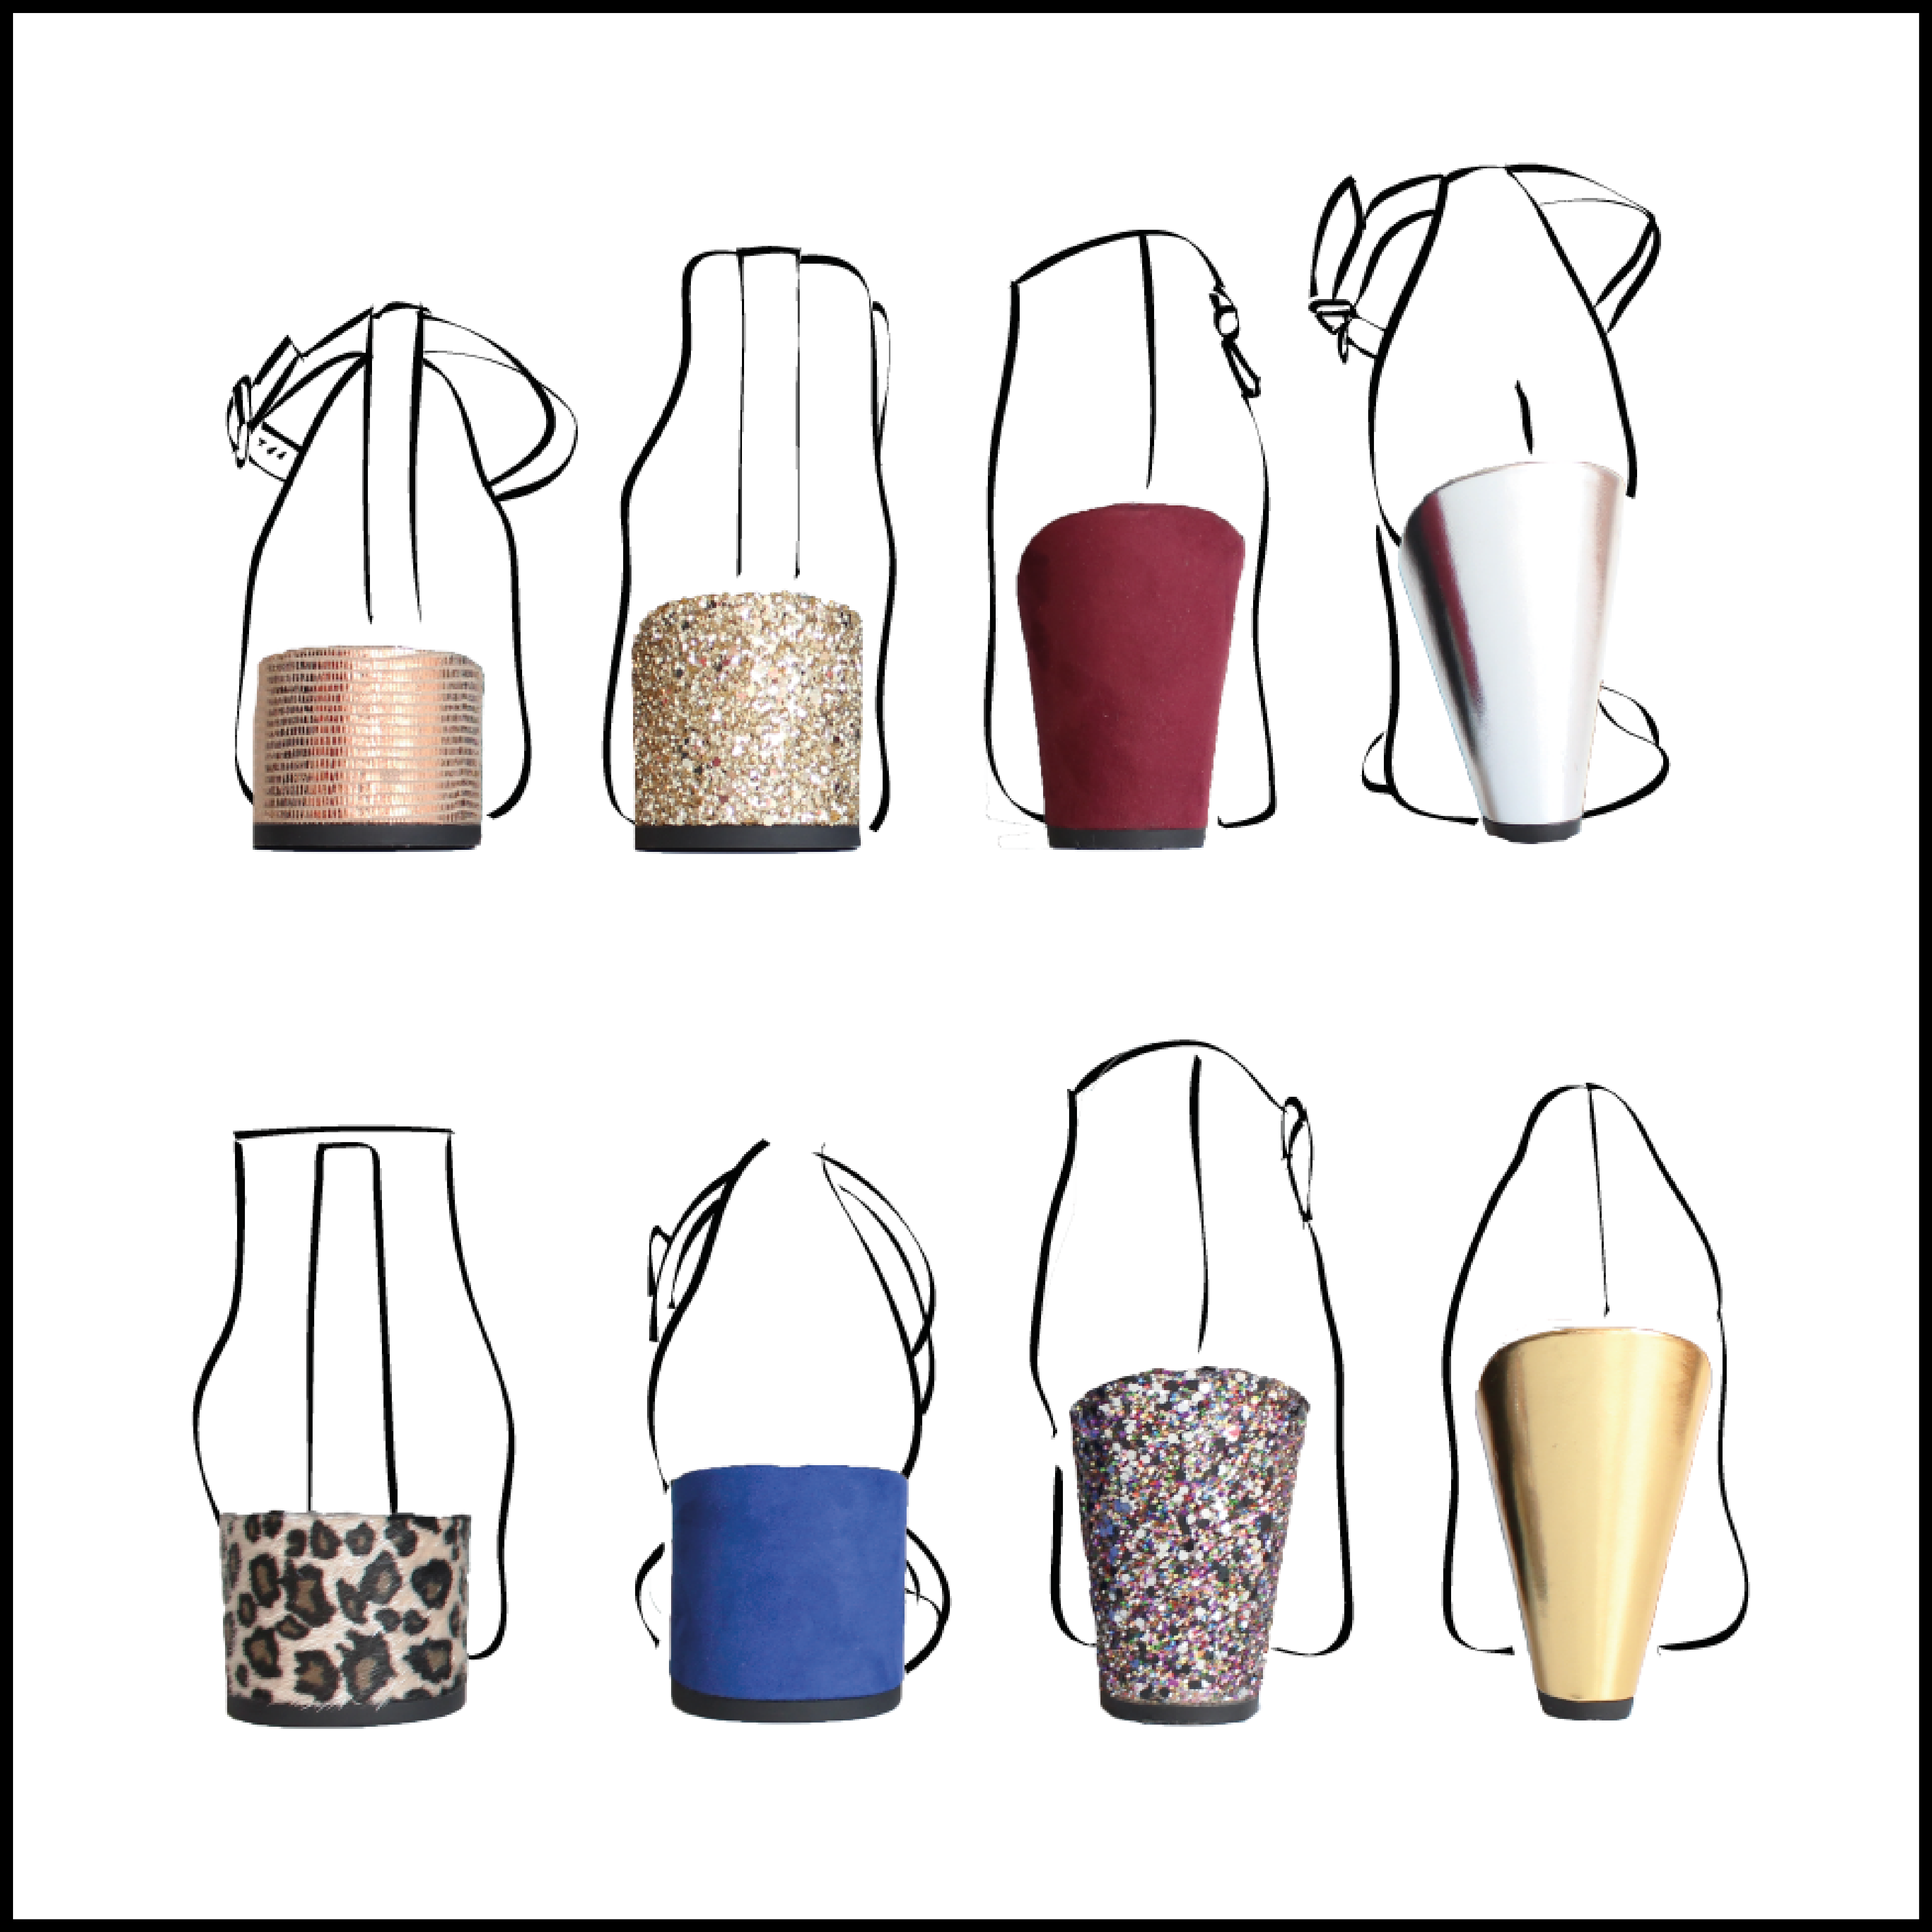 The My Choupi Chouz interchangeable heels